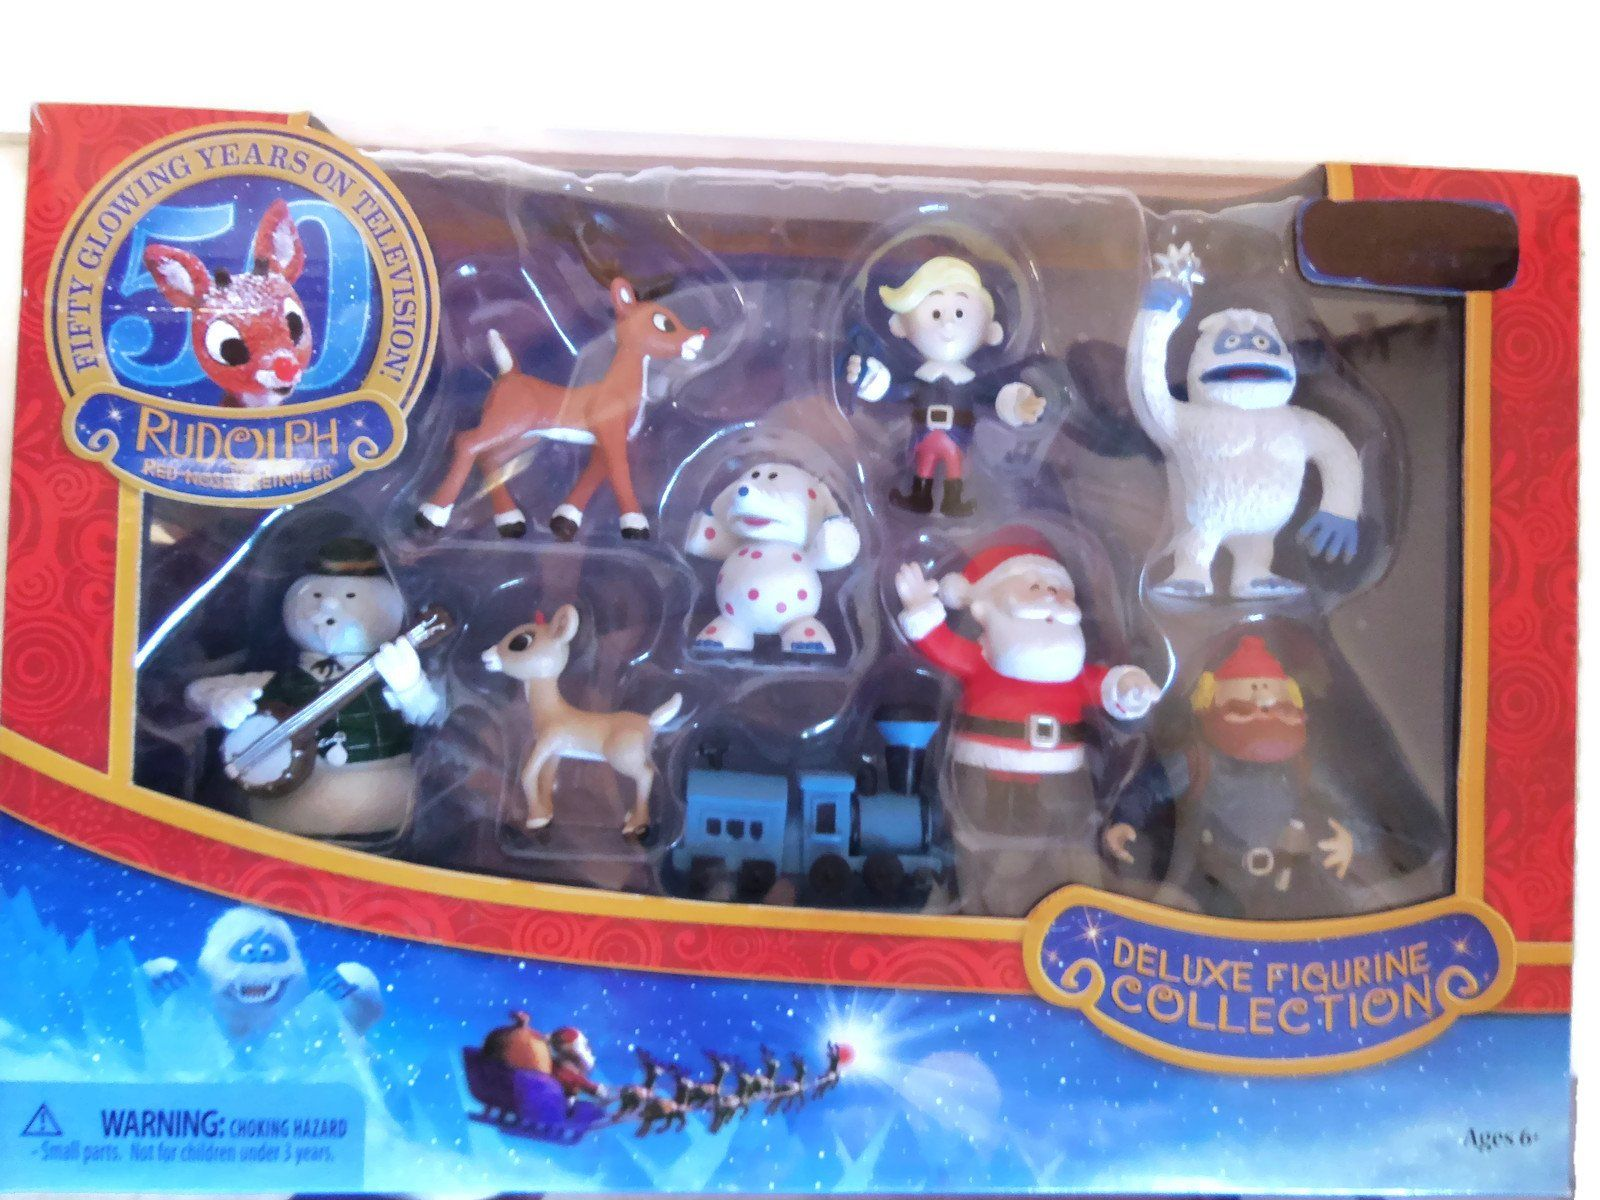 Rudolph the Red-Nosed Reindeer Deluxe Figurine Collection